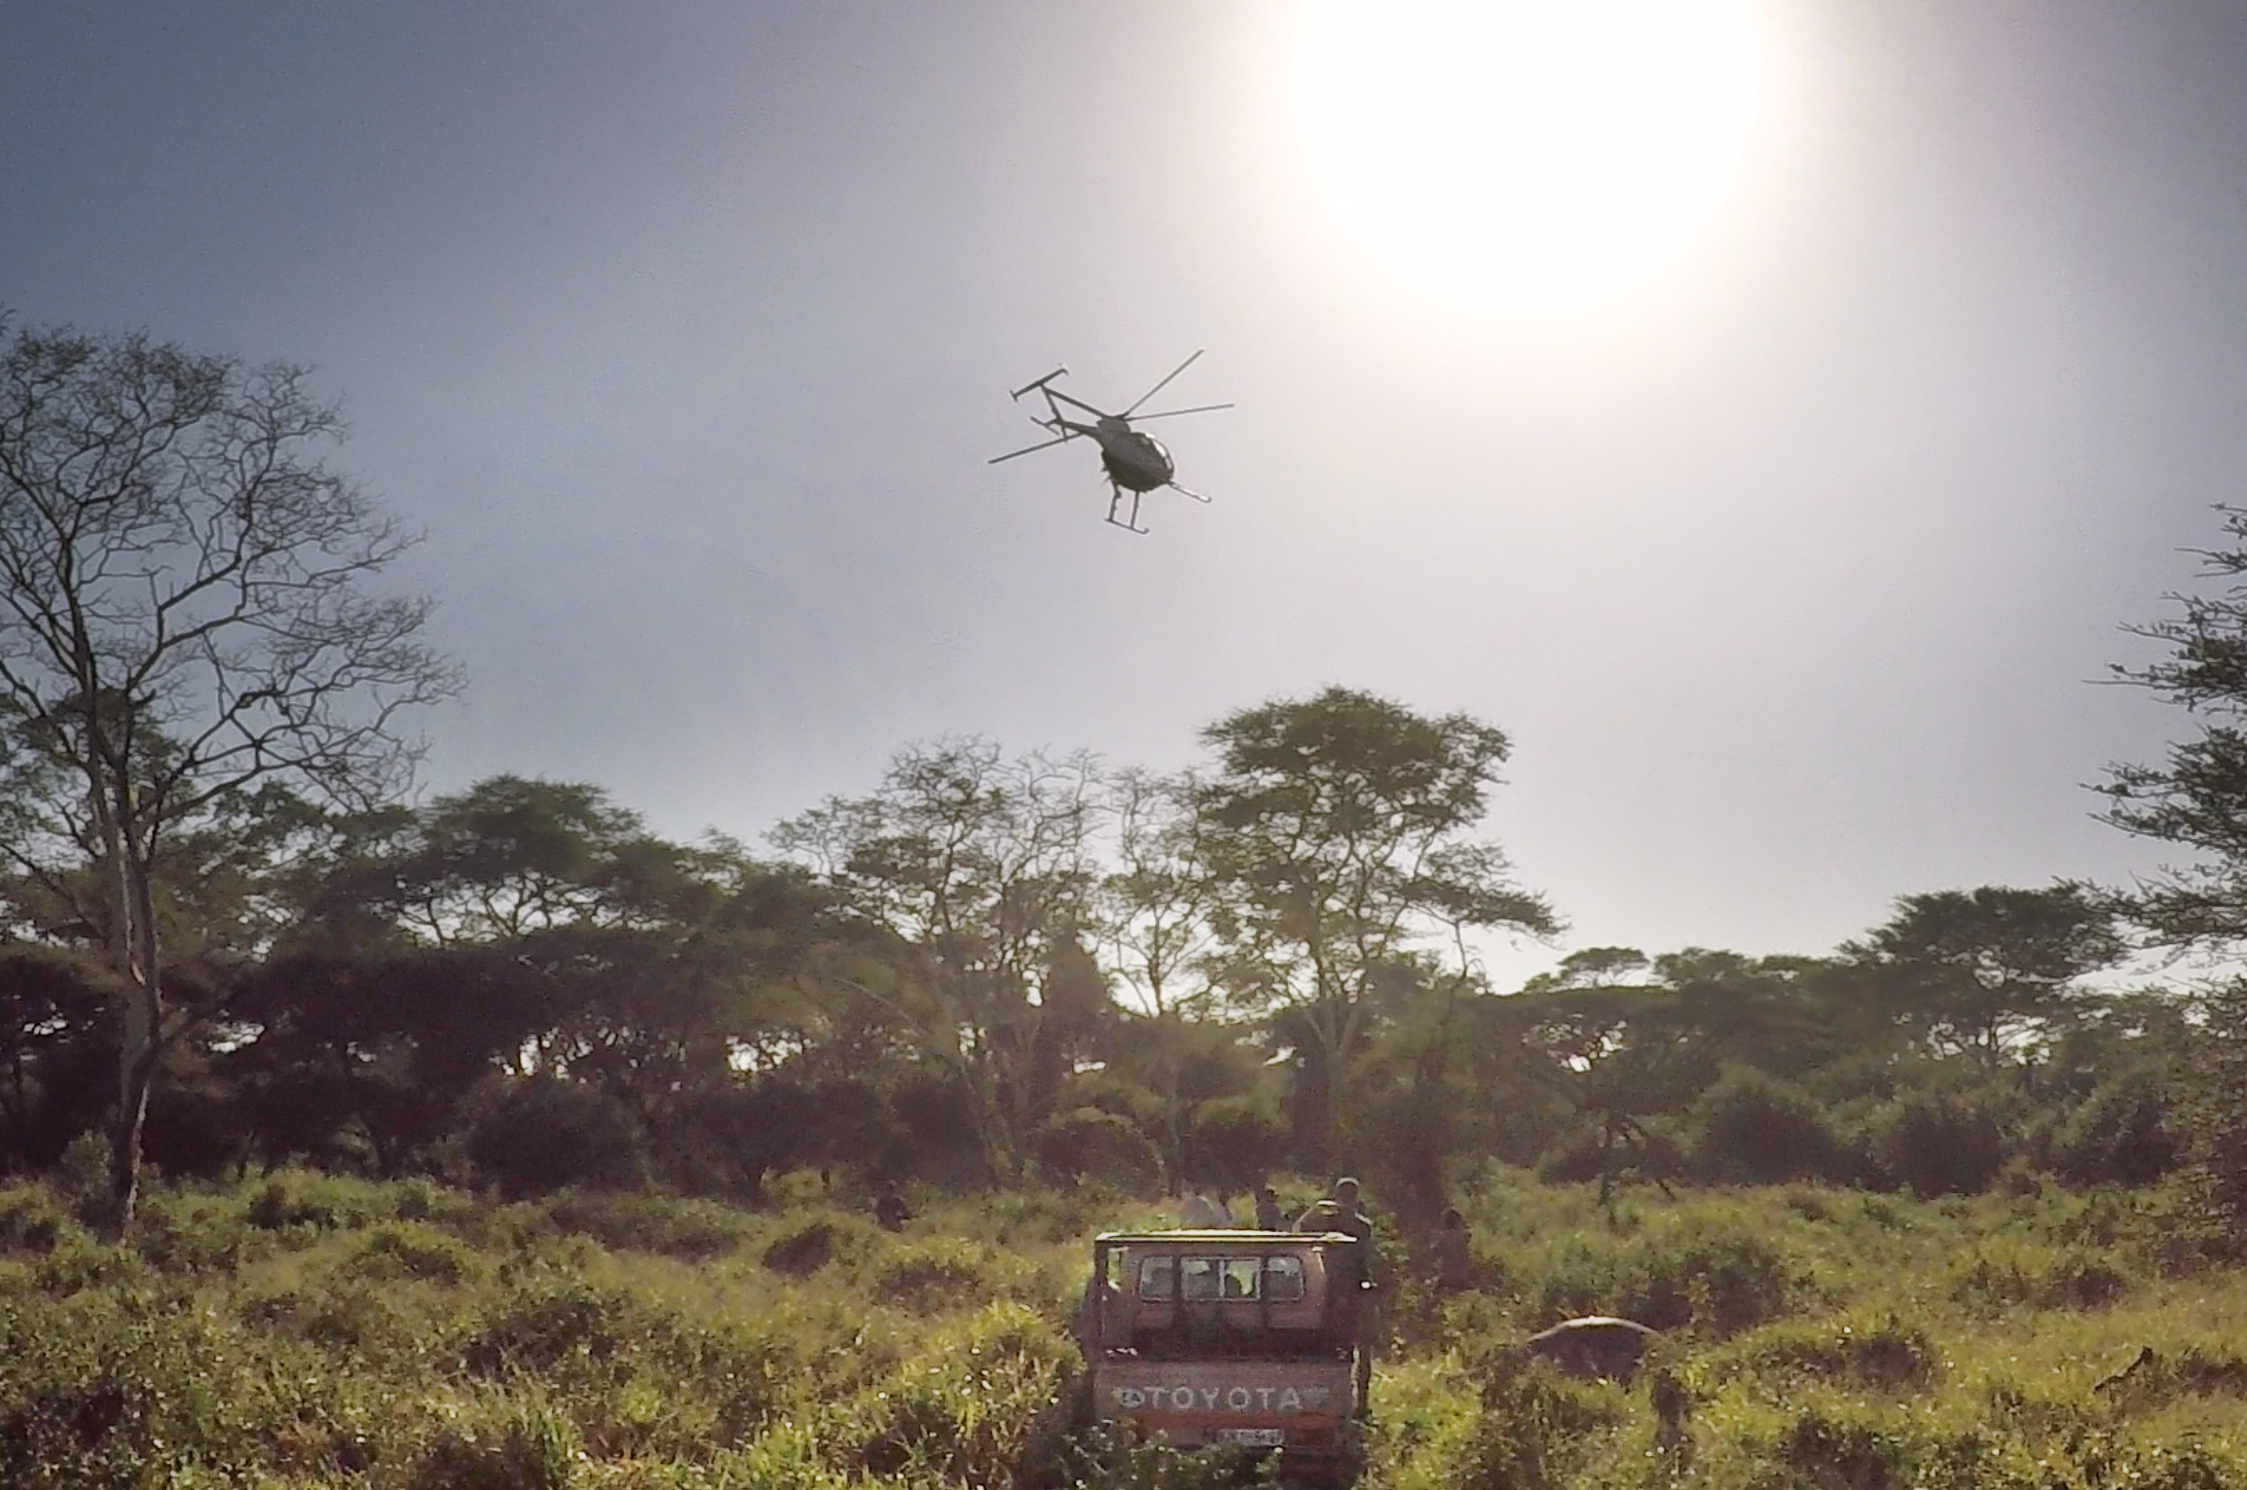 Dr. Dave Cooper locating the elephants from the air.